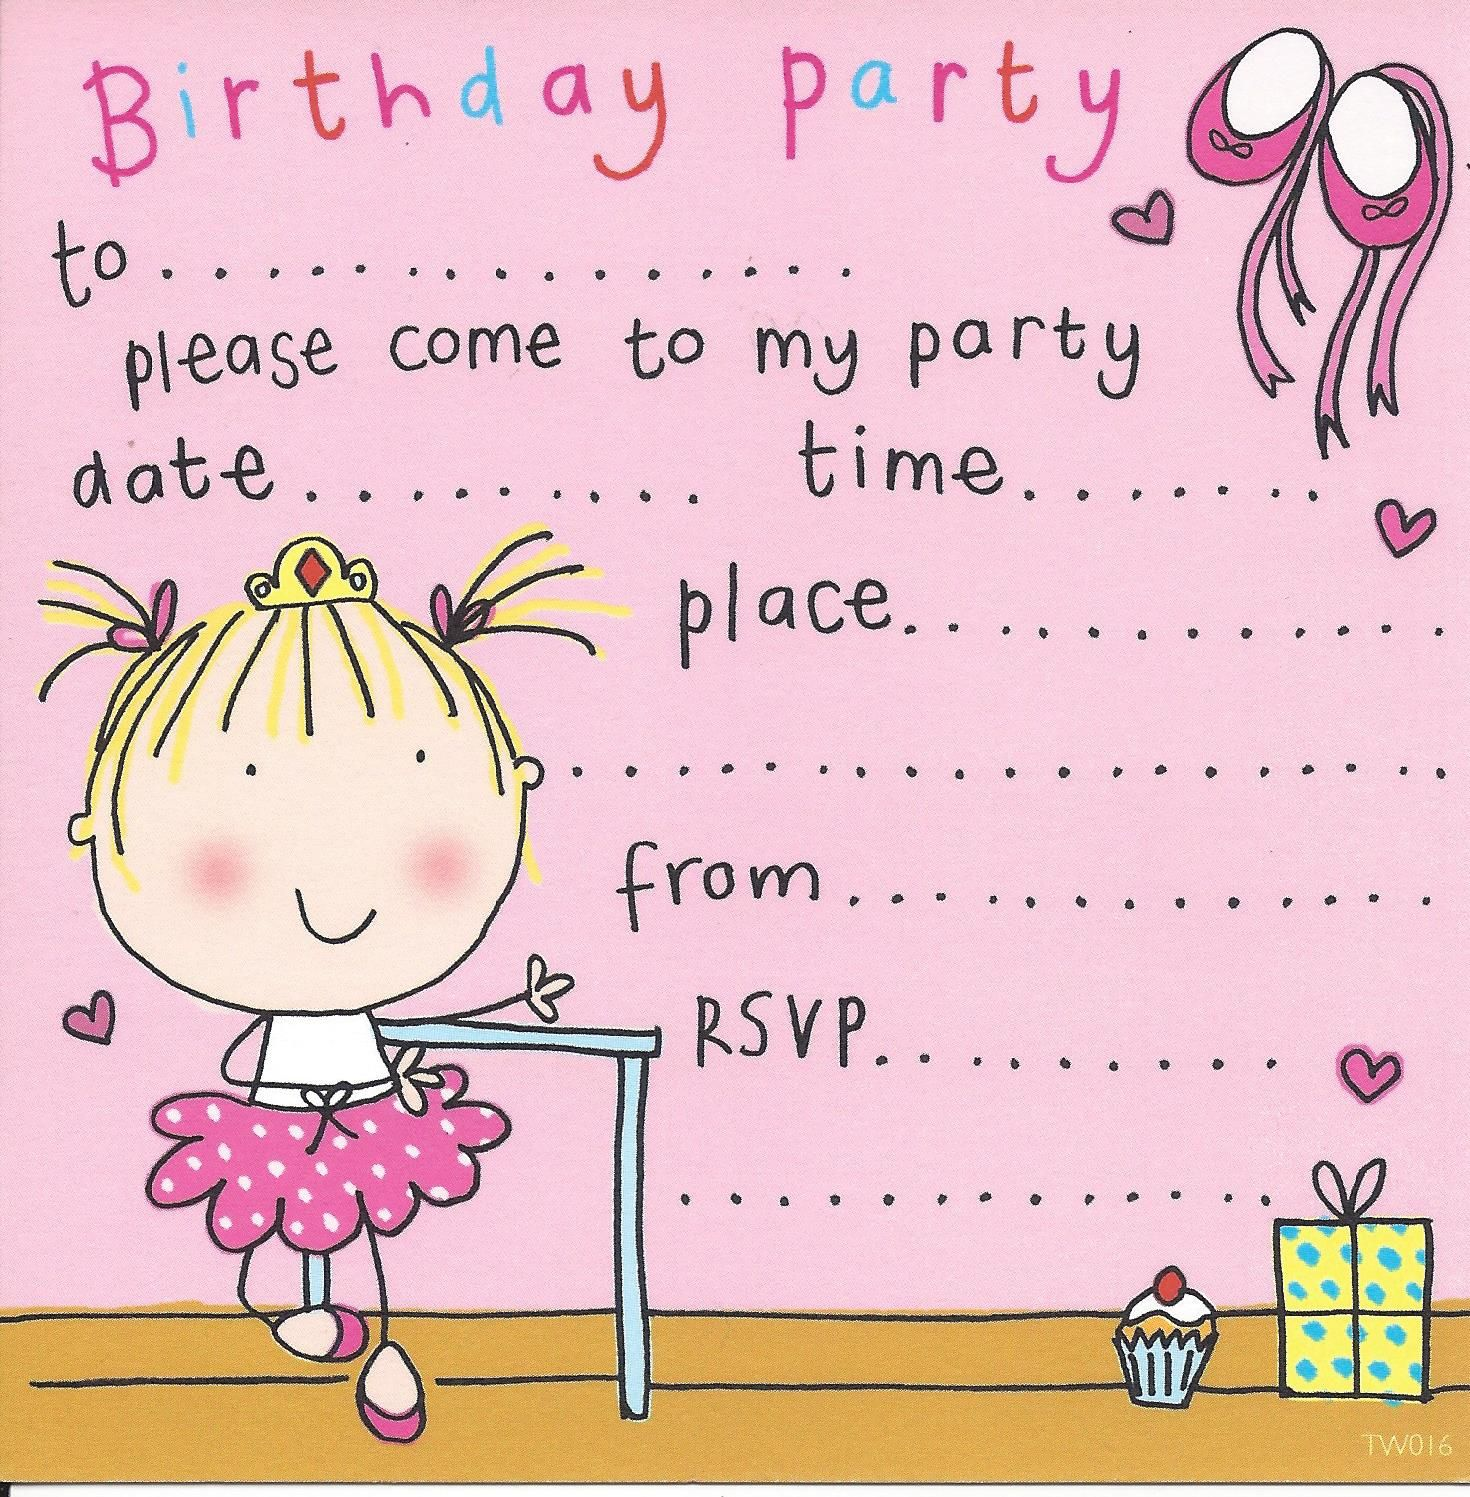 Party invitations birthday party invitations kids party party invitations birthday party invitations kids party invitations childrens party invites filmwisefo